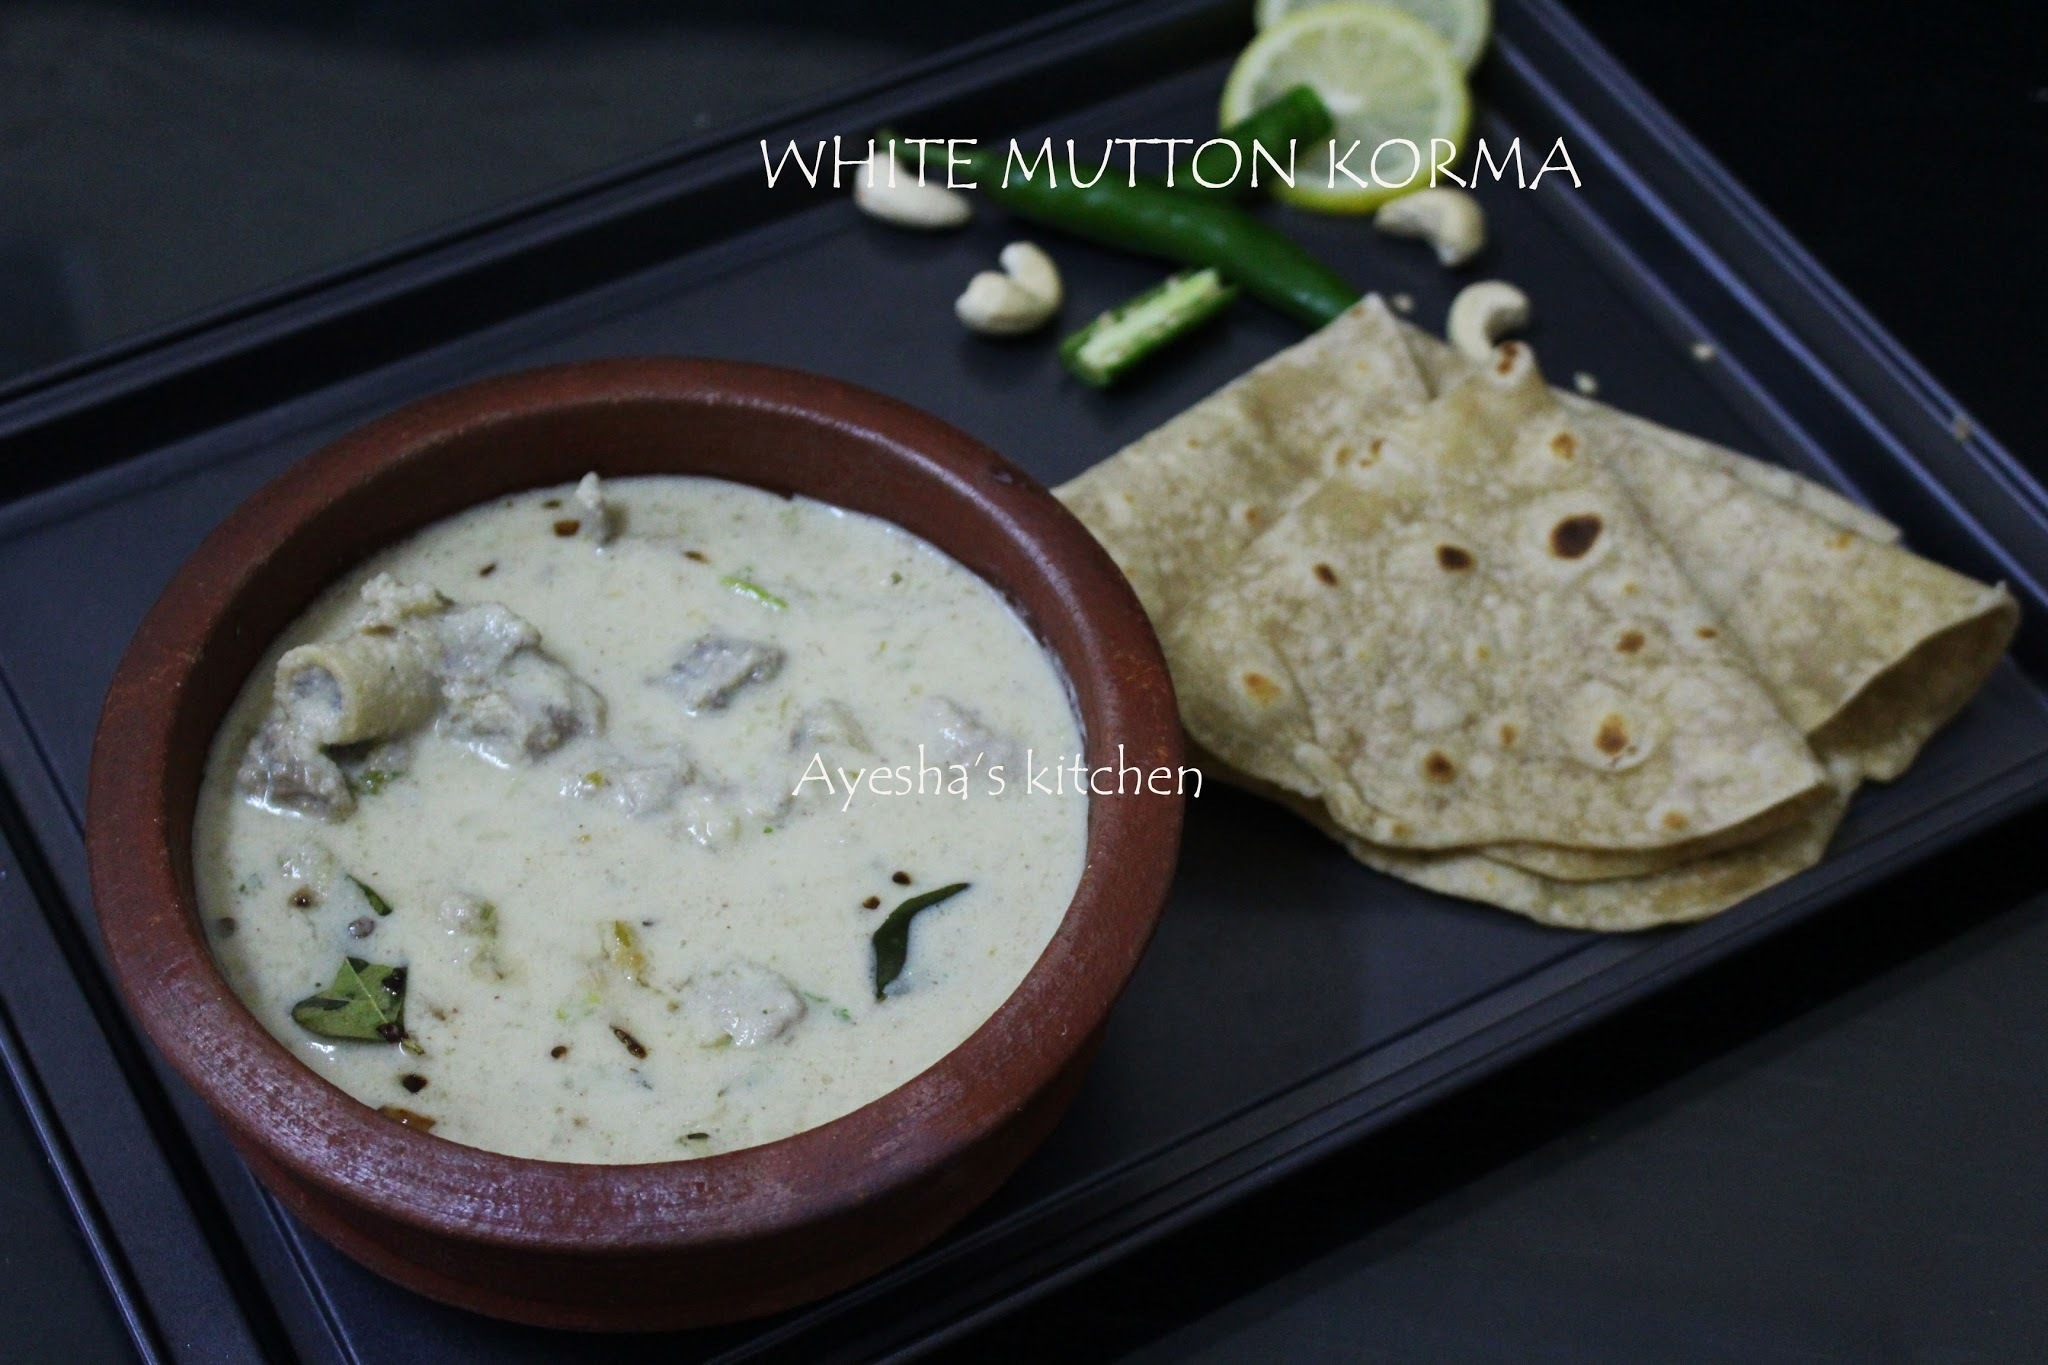 MUTTON RECIPES - WHITE MUTTON KORMA